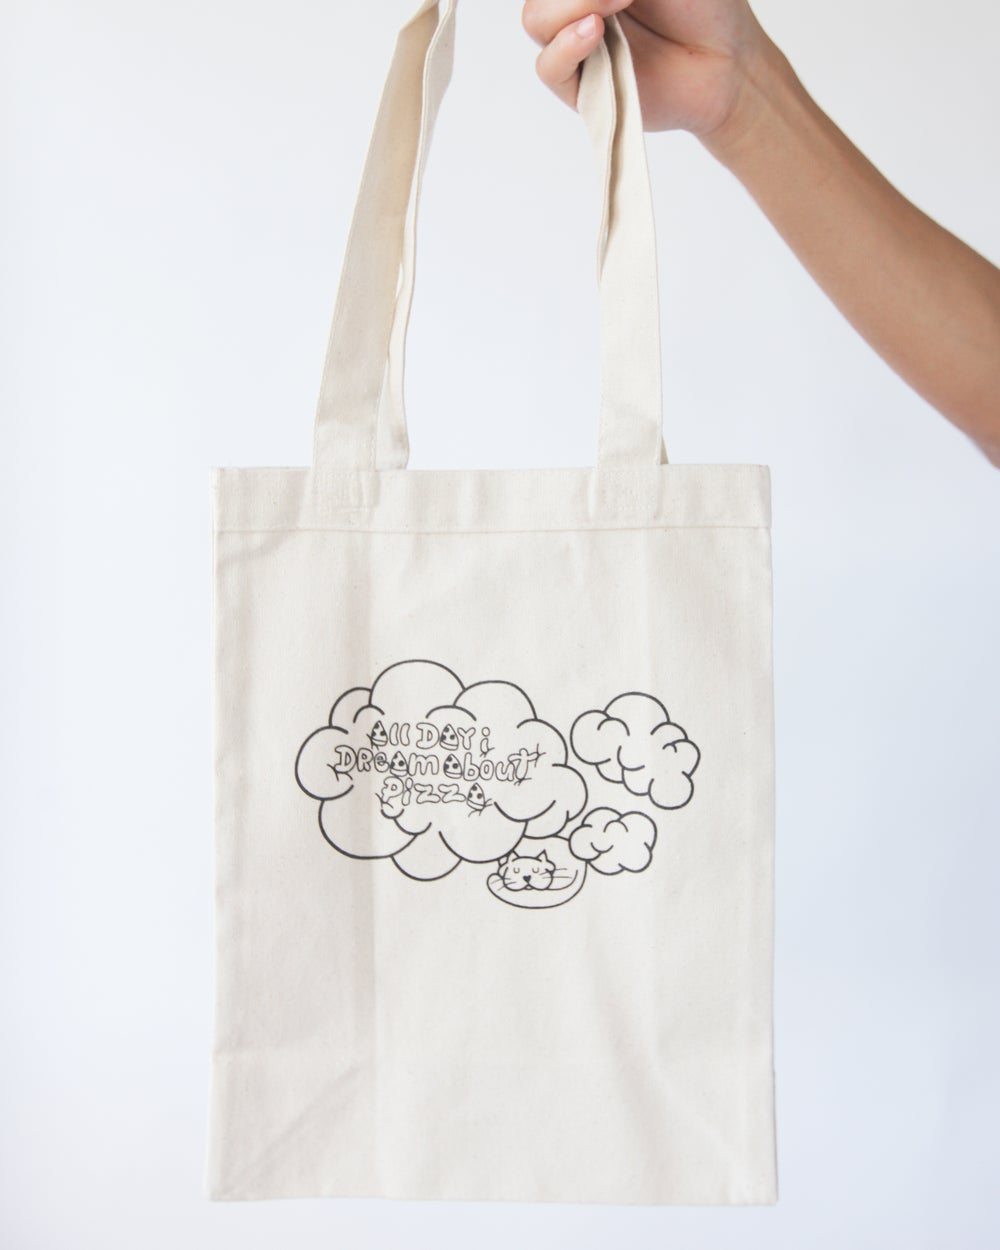 Image of Dreamin tote